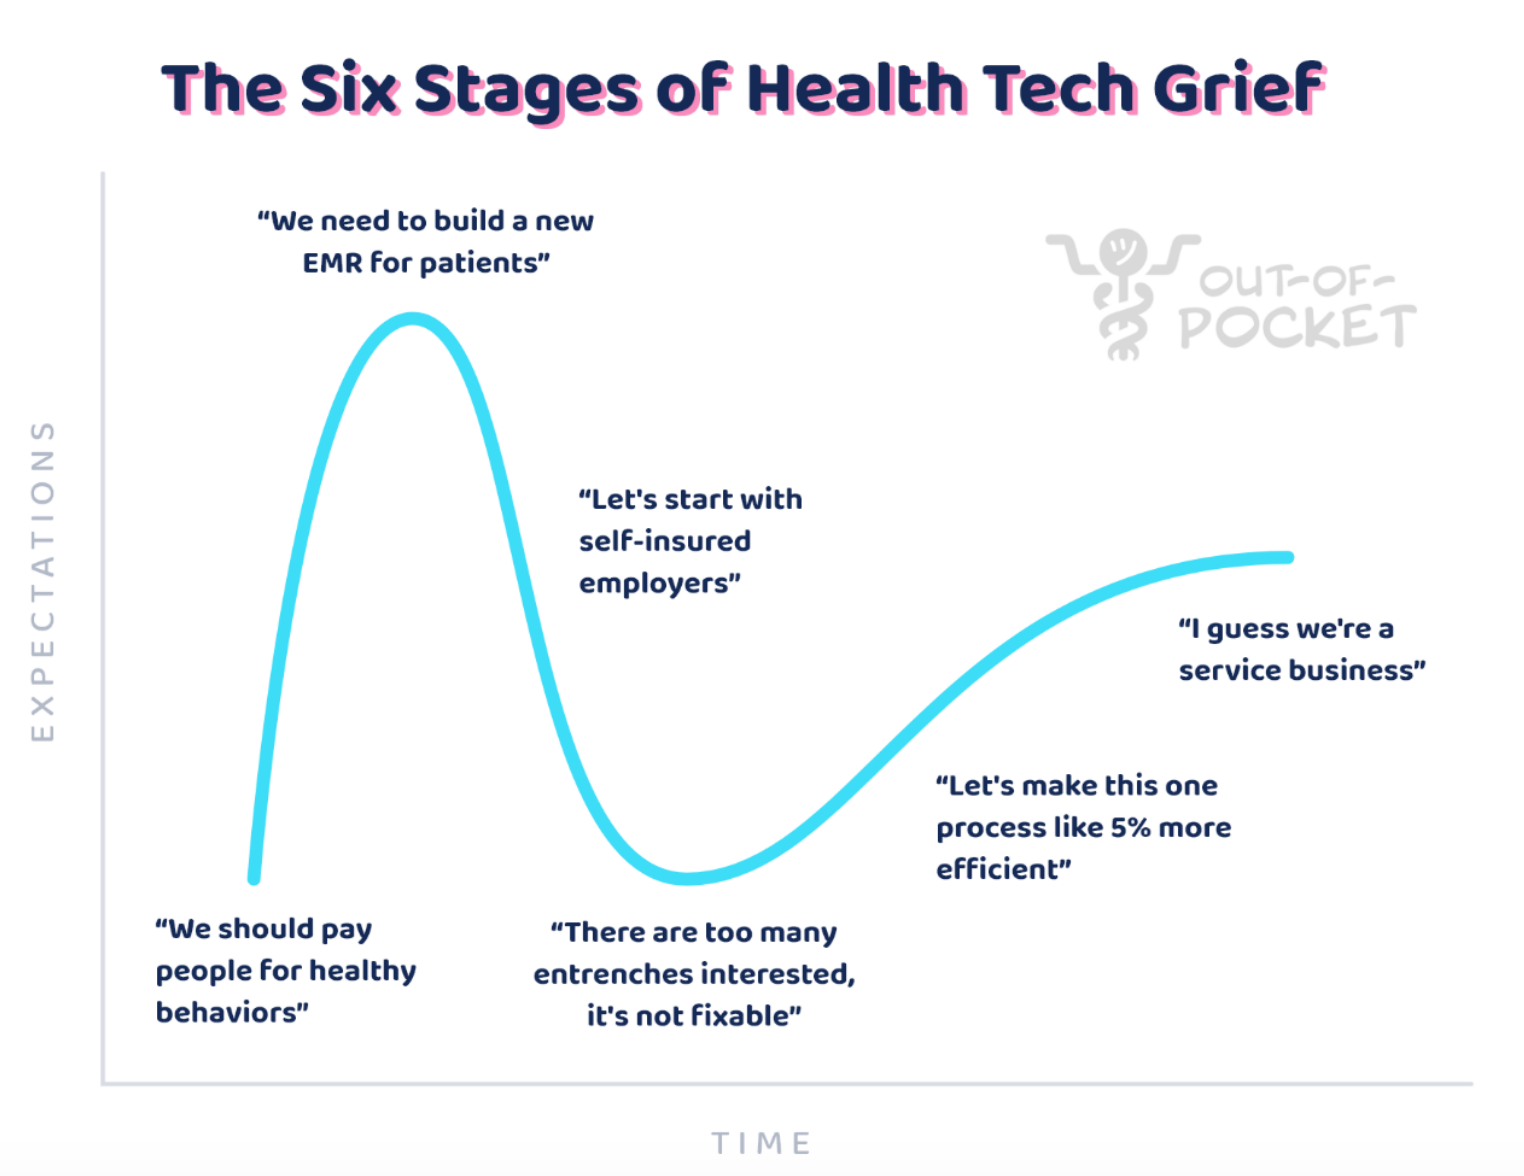 The Six Stages of Health Tech Grief